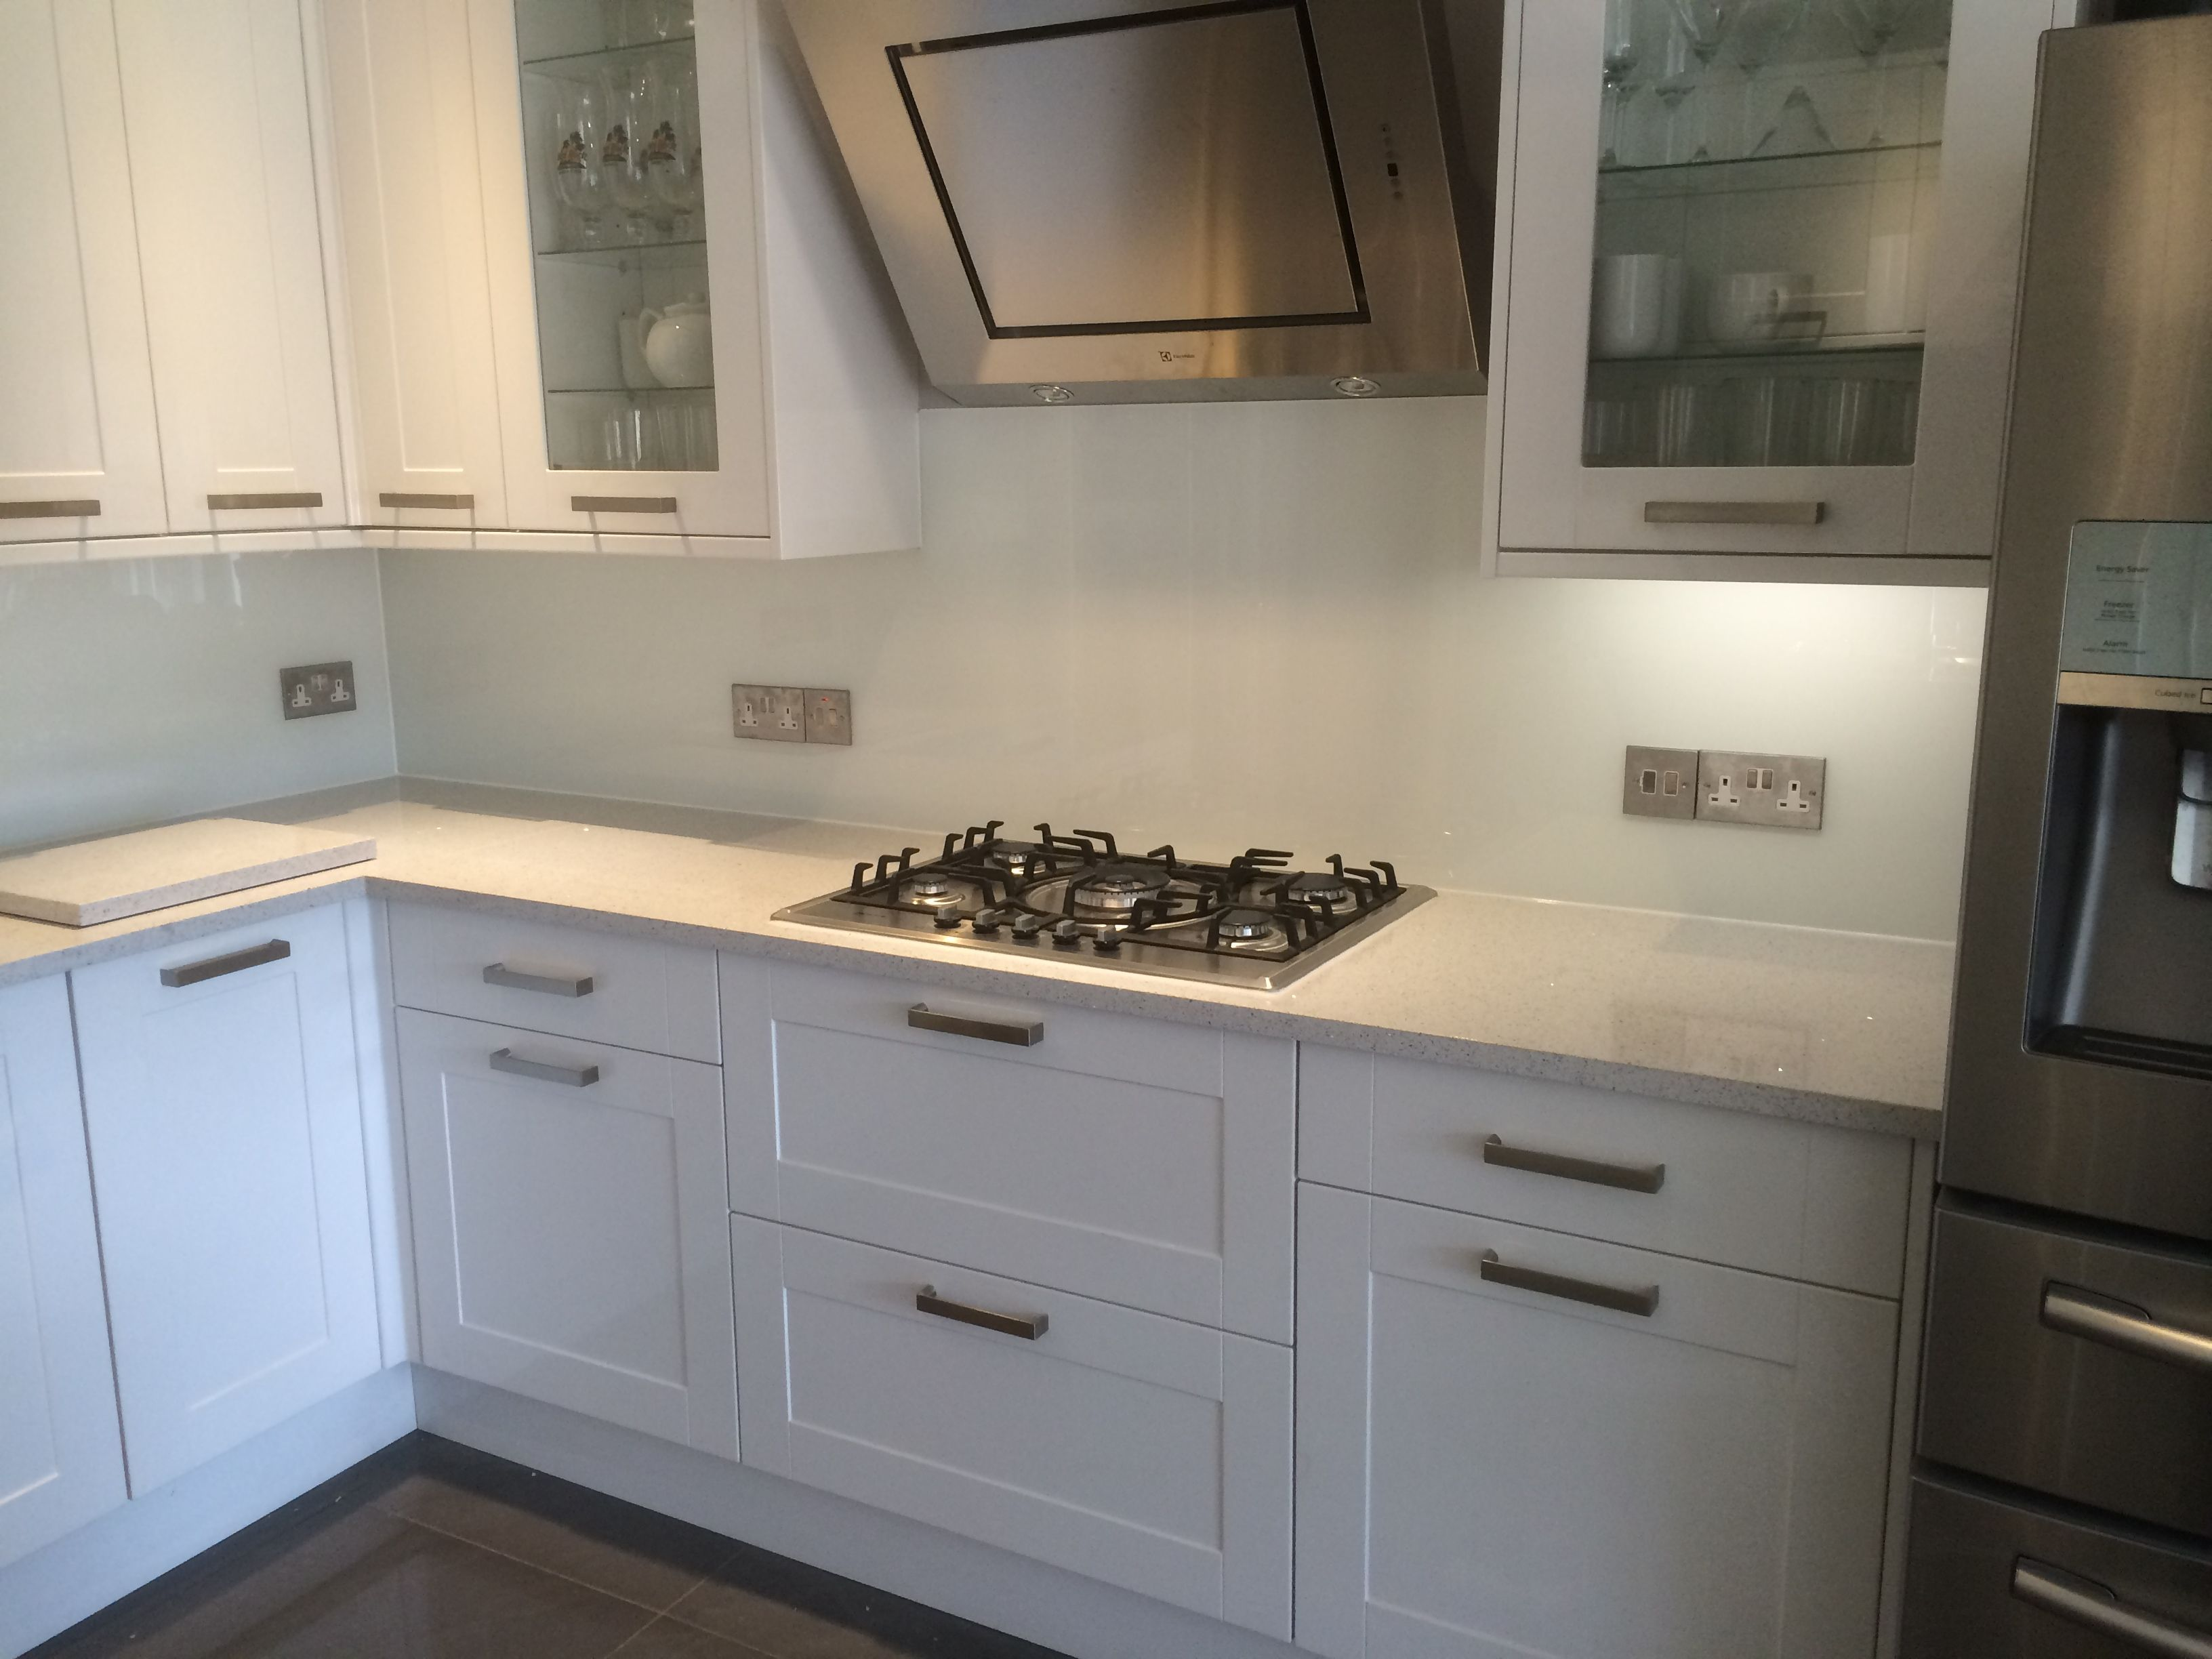 Contemporary White Glass Splashbacks Against Compac Lactea Quartz Worktops Kitchen Countertops